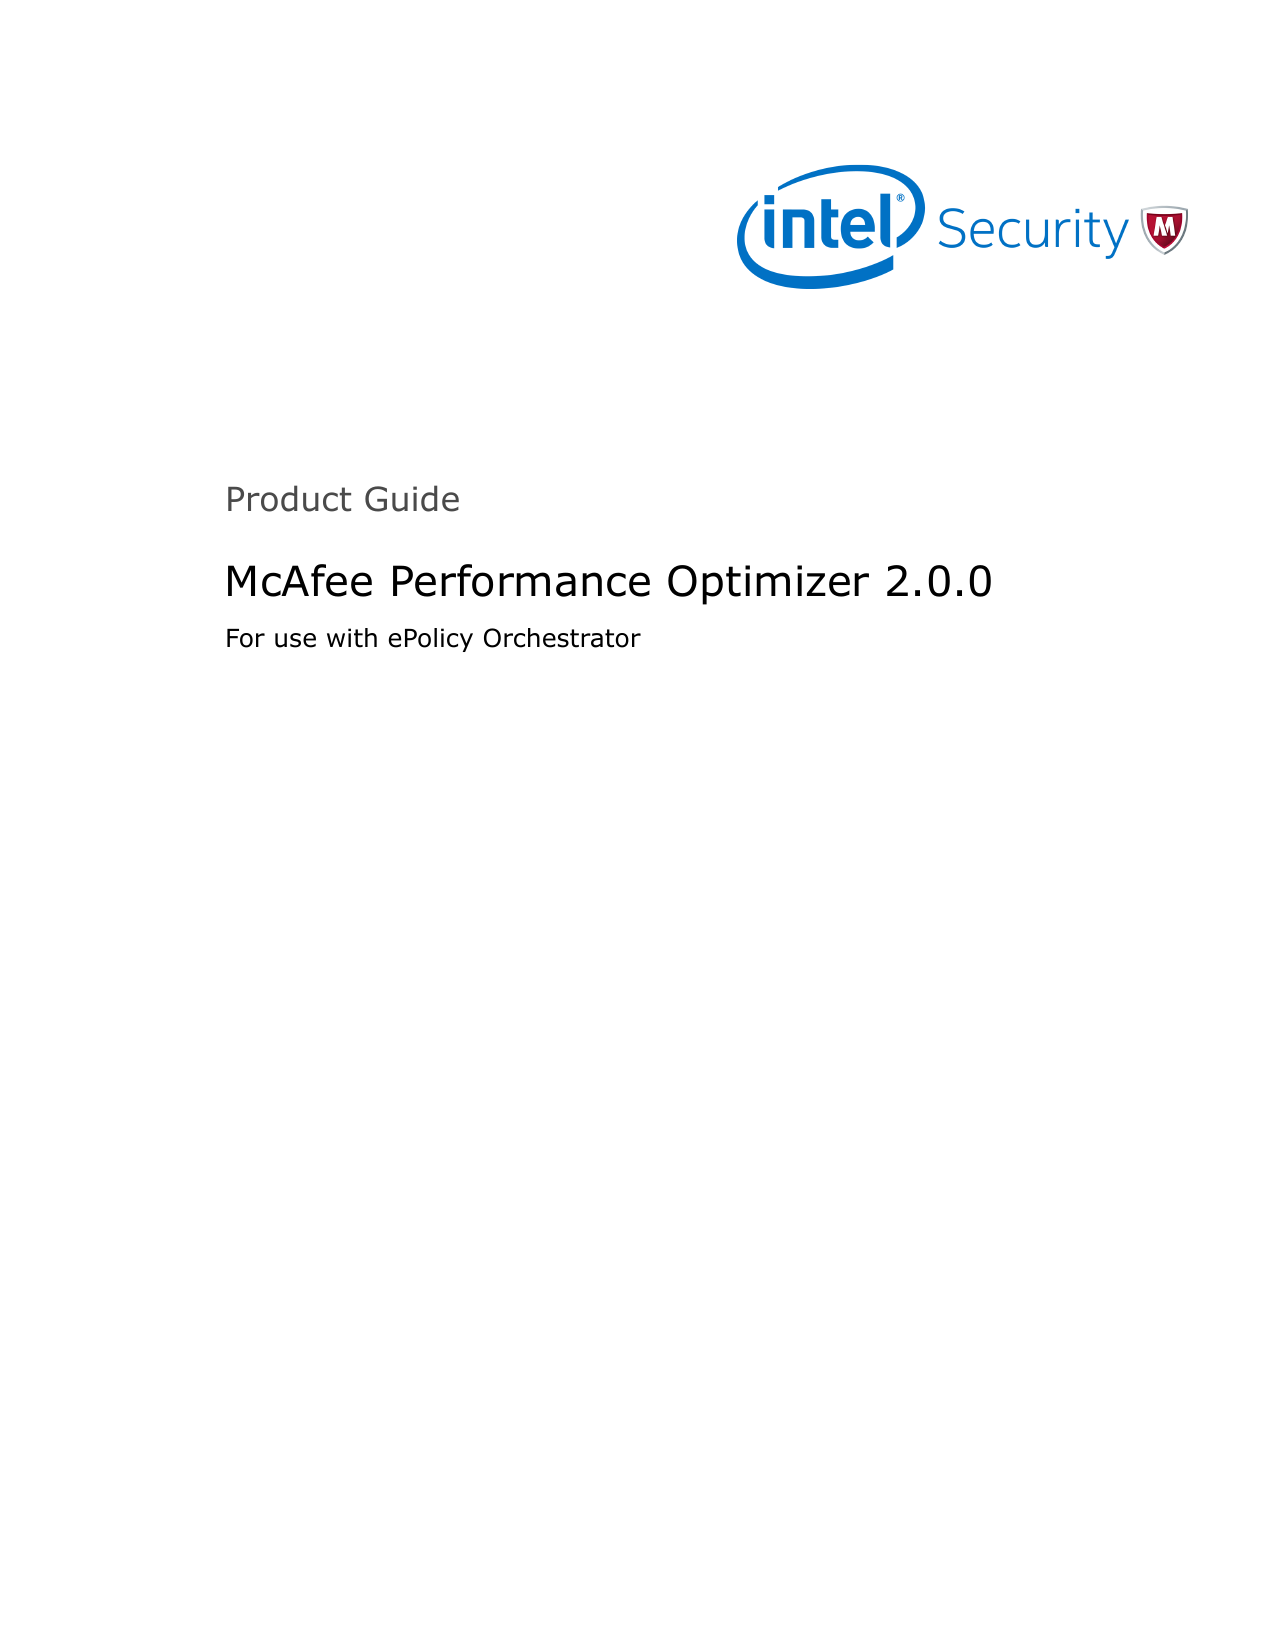 Performance Optimizer 2 0 0 Product Guide